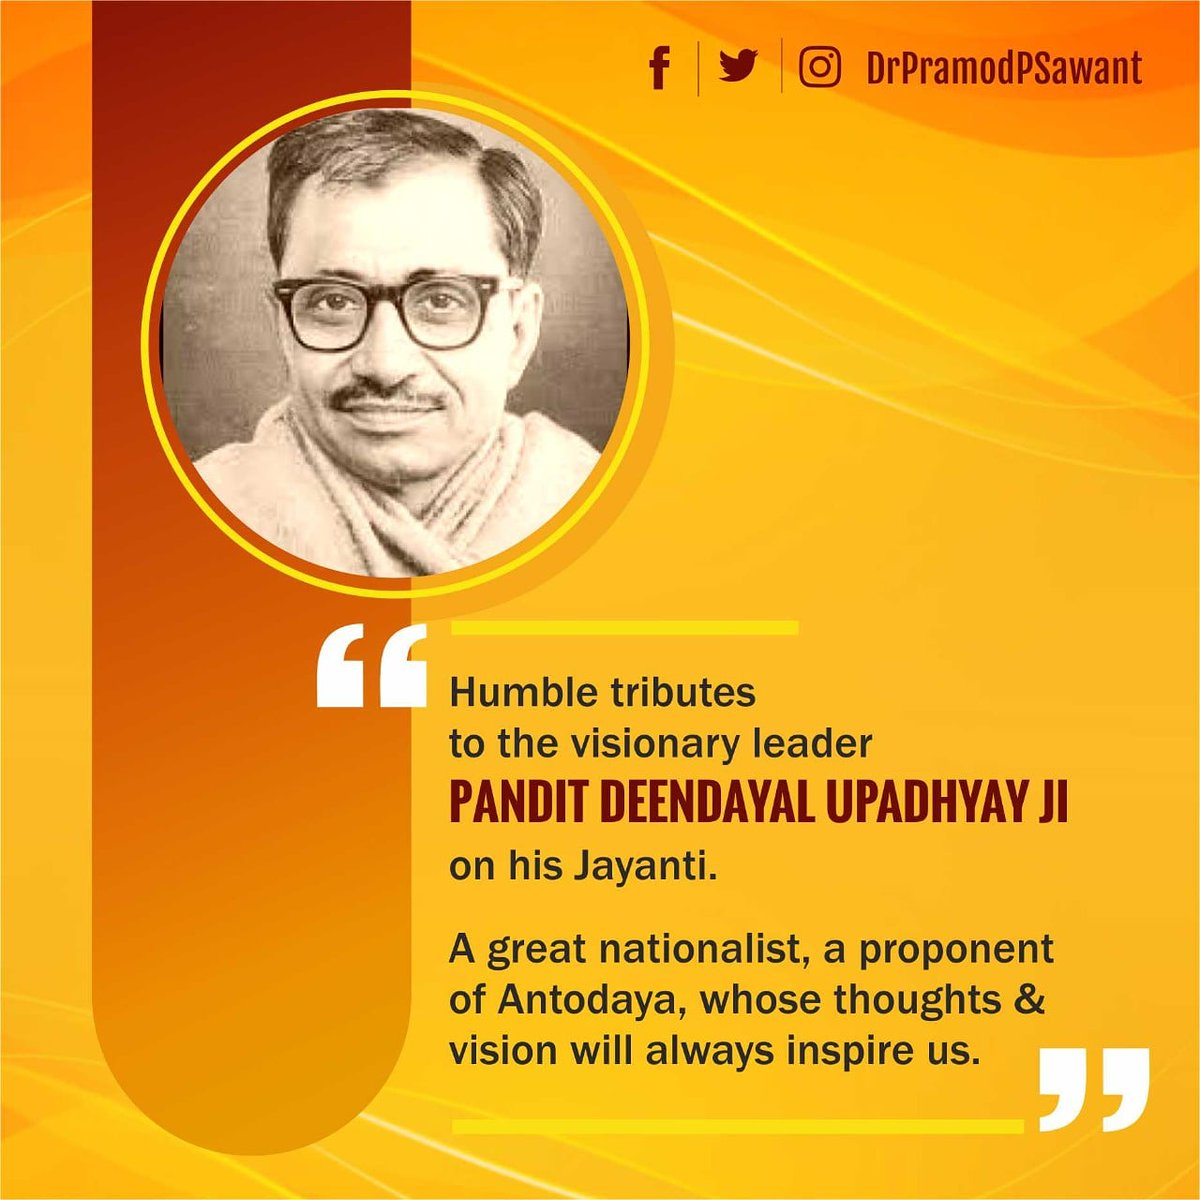 Humble tributes to the visionary leader Pandit #DeendayalUpadhyaya Ji on his Jayanti. A great nationalist, a proponent of Antodaya, whose thoughts and vision will always inspire us. https://t.co/HbZOU5tfQg